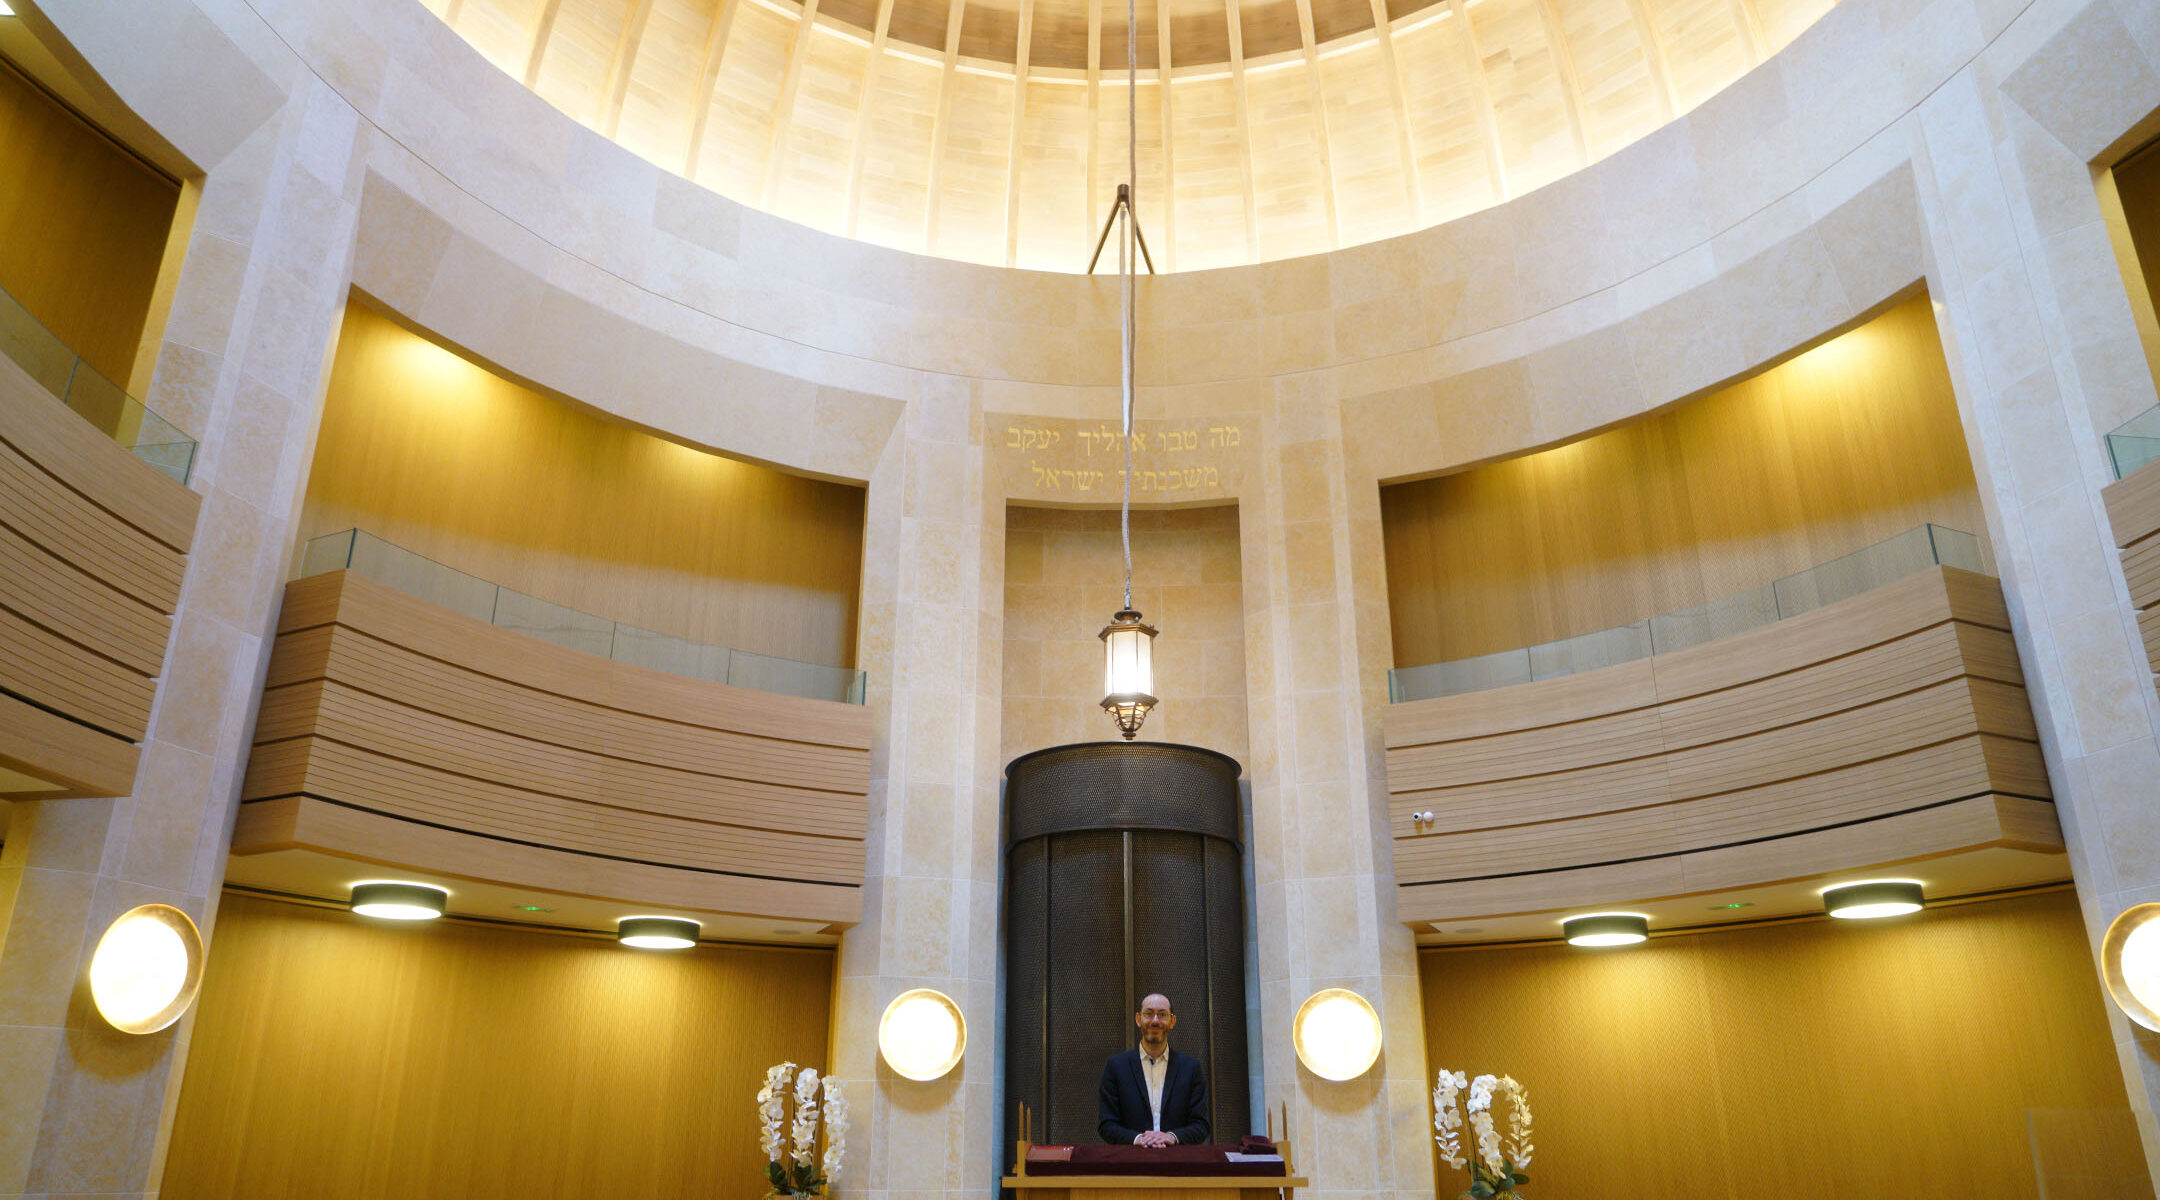 Rabbi Daniel Torgmant prays at the Synagogue Edmond Safra in Monaco on March 7, 2018. (Cnaan Liphshiz)